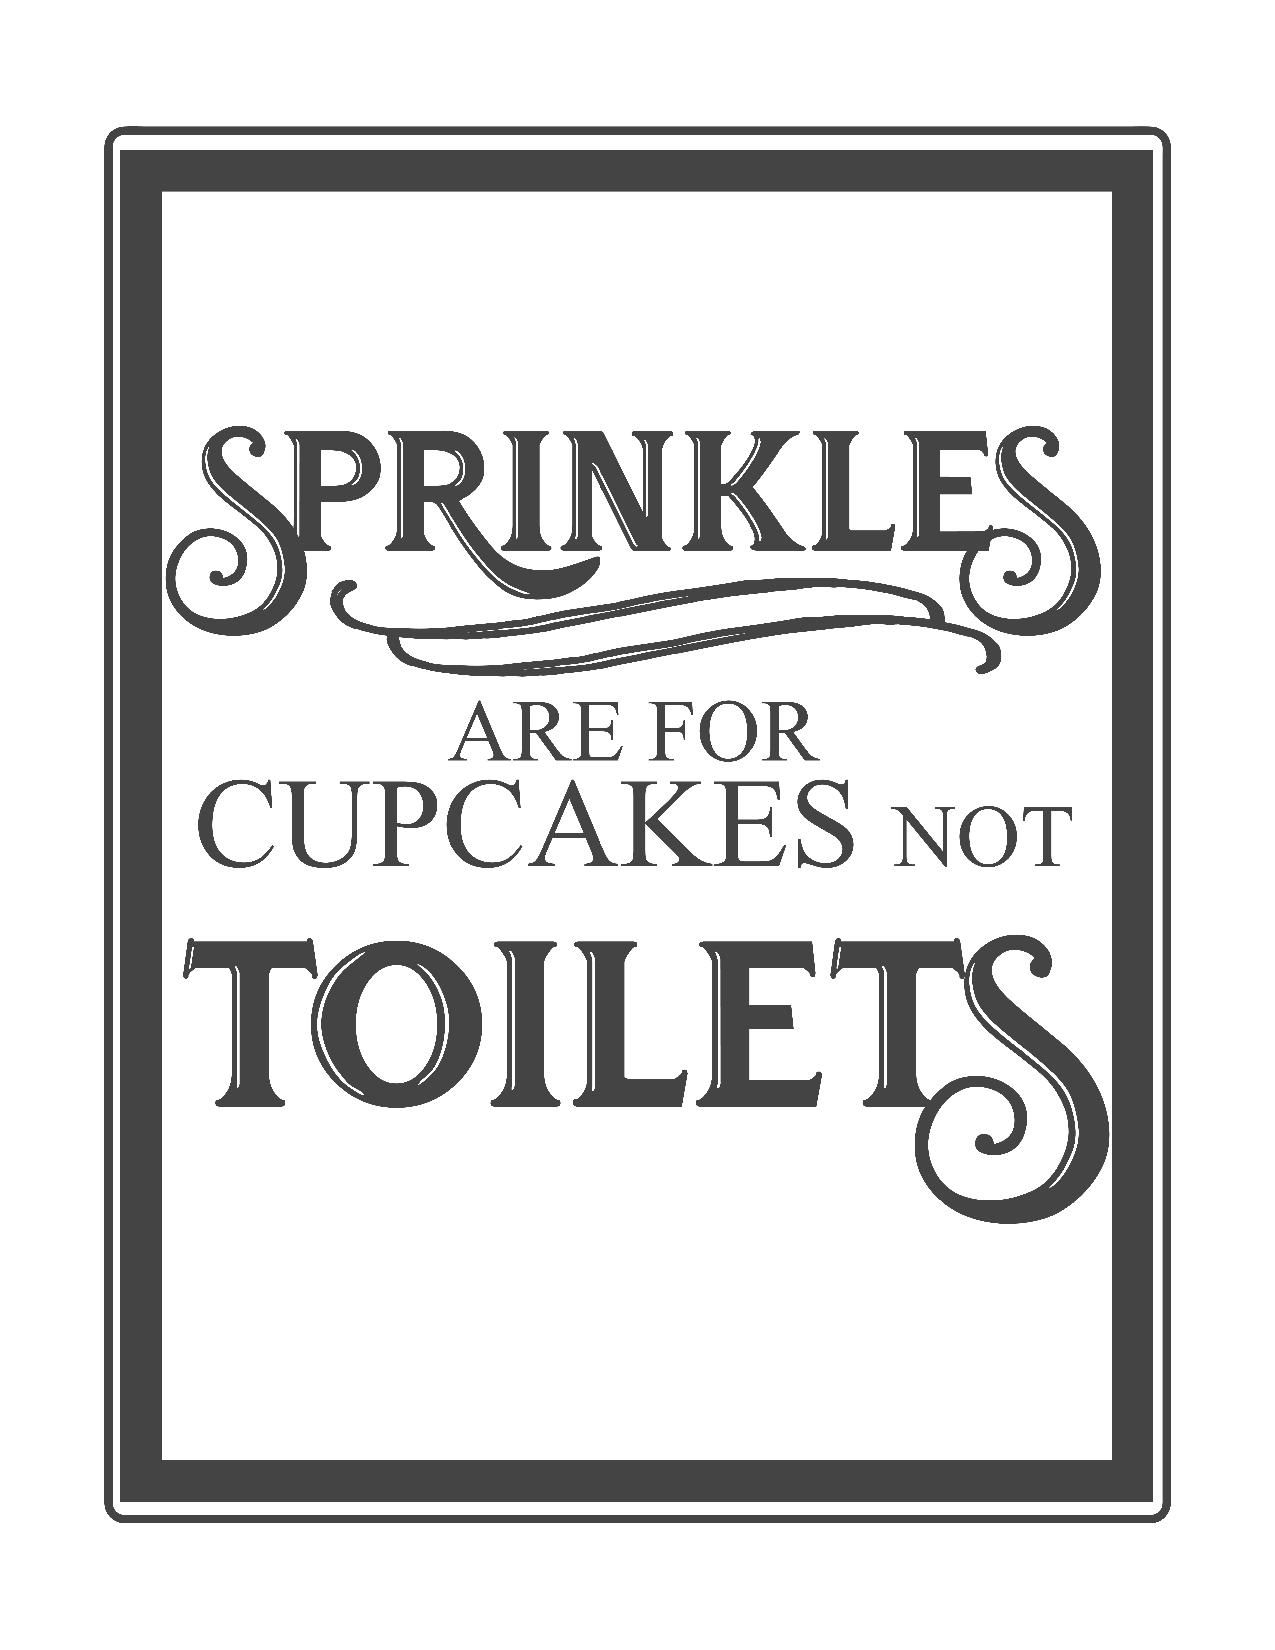 Free Vintage Bathroom Printables | Printables ** | Pinterest - Free Printable No Restroom Signs